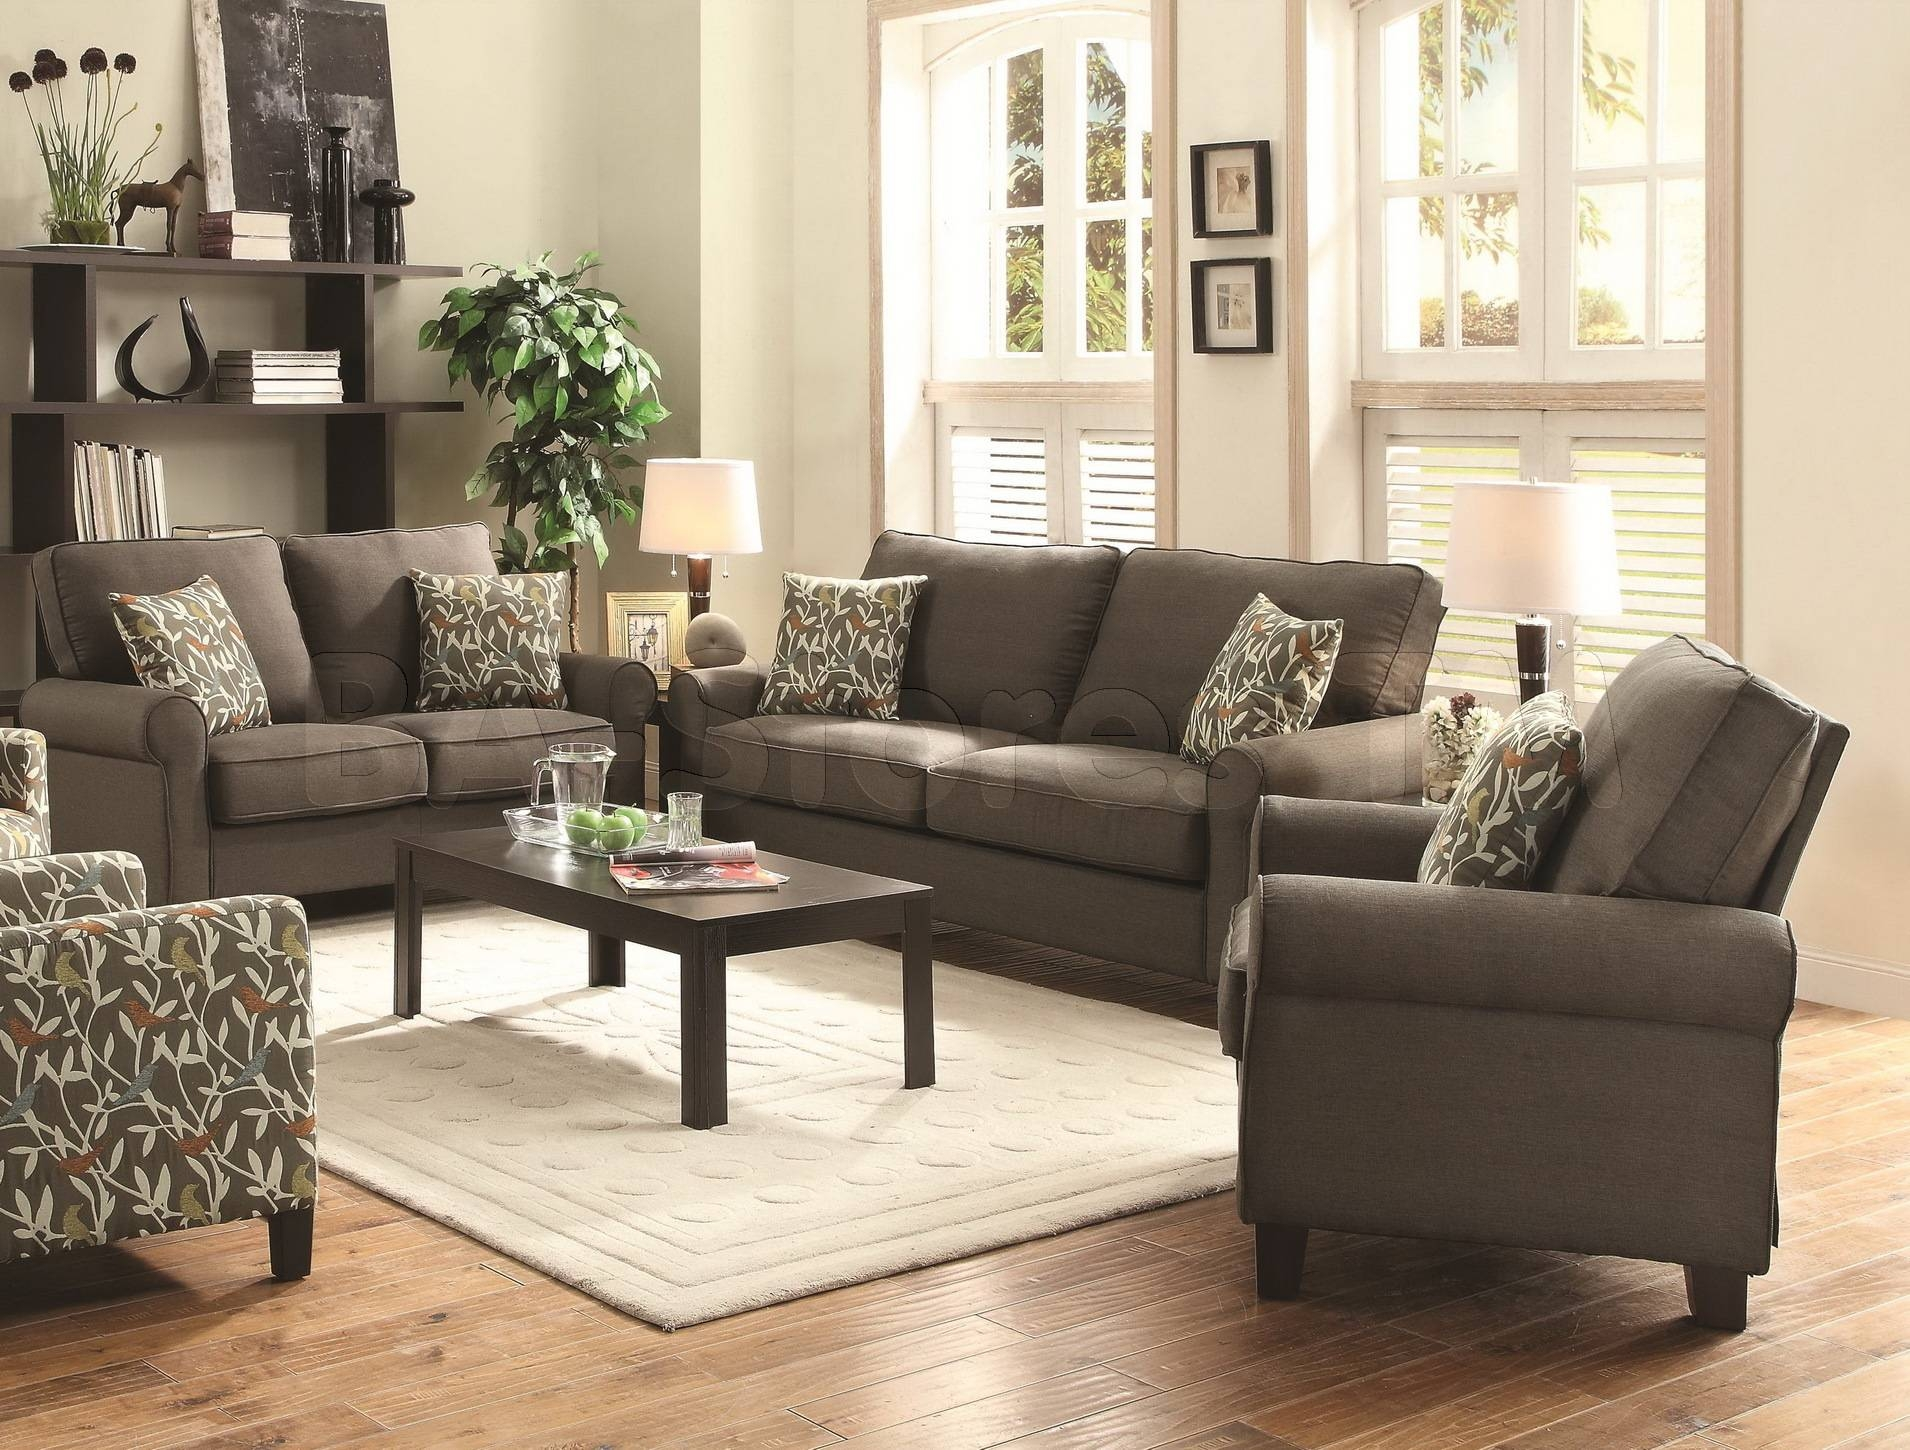 2017 Latest Sofa Loveseat and Chair Set